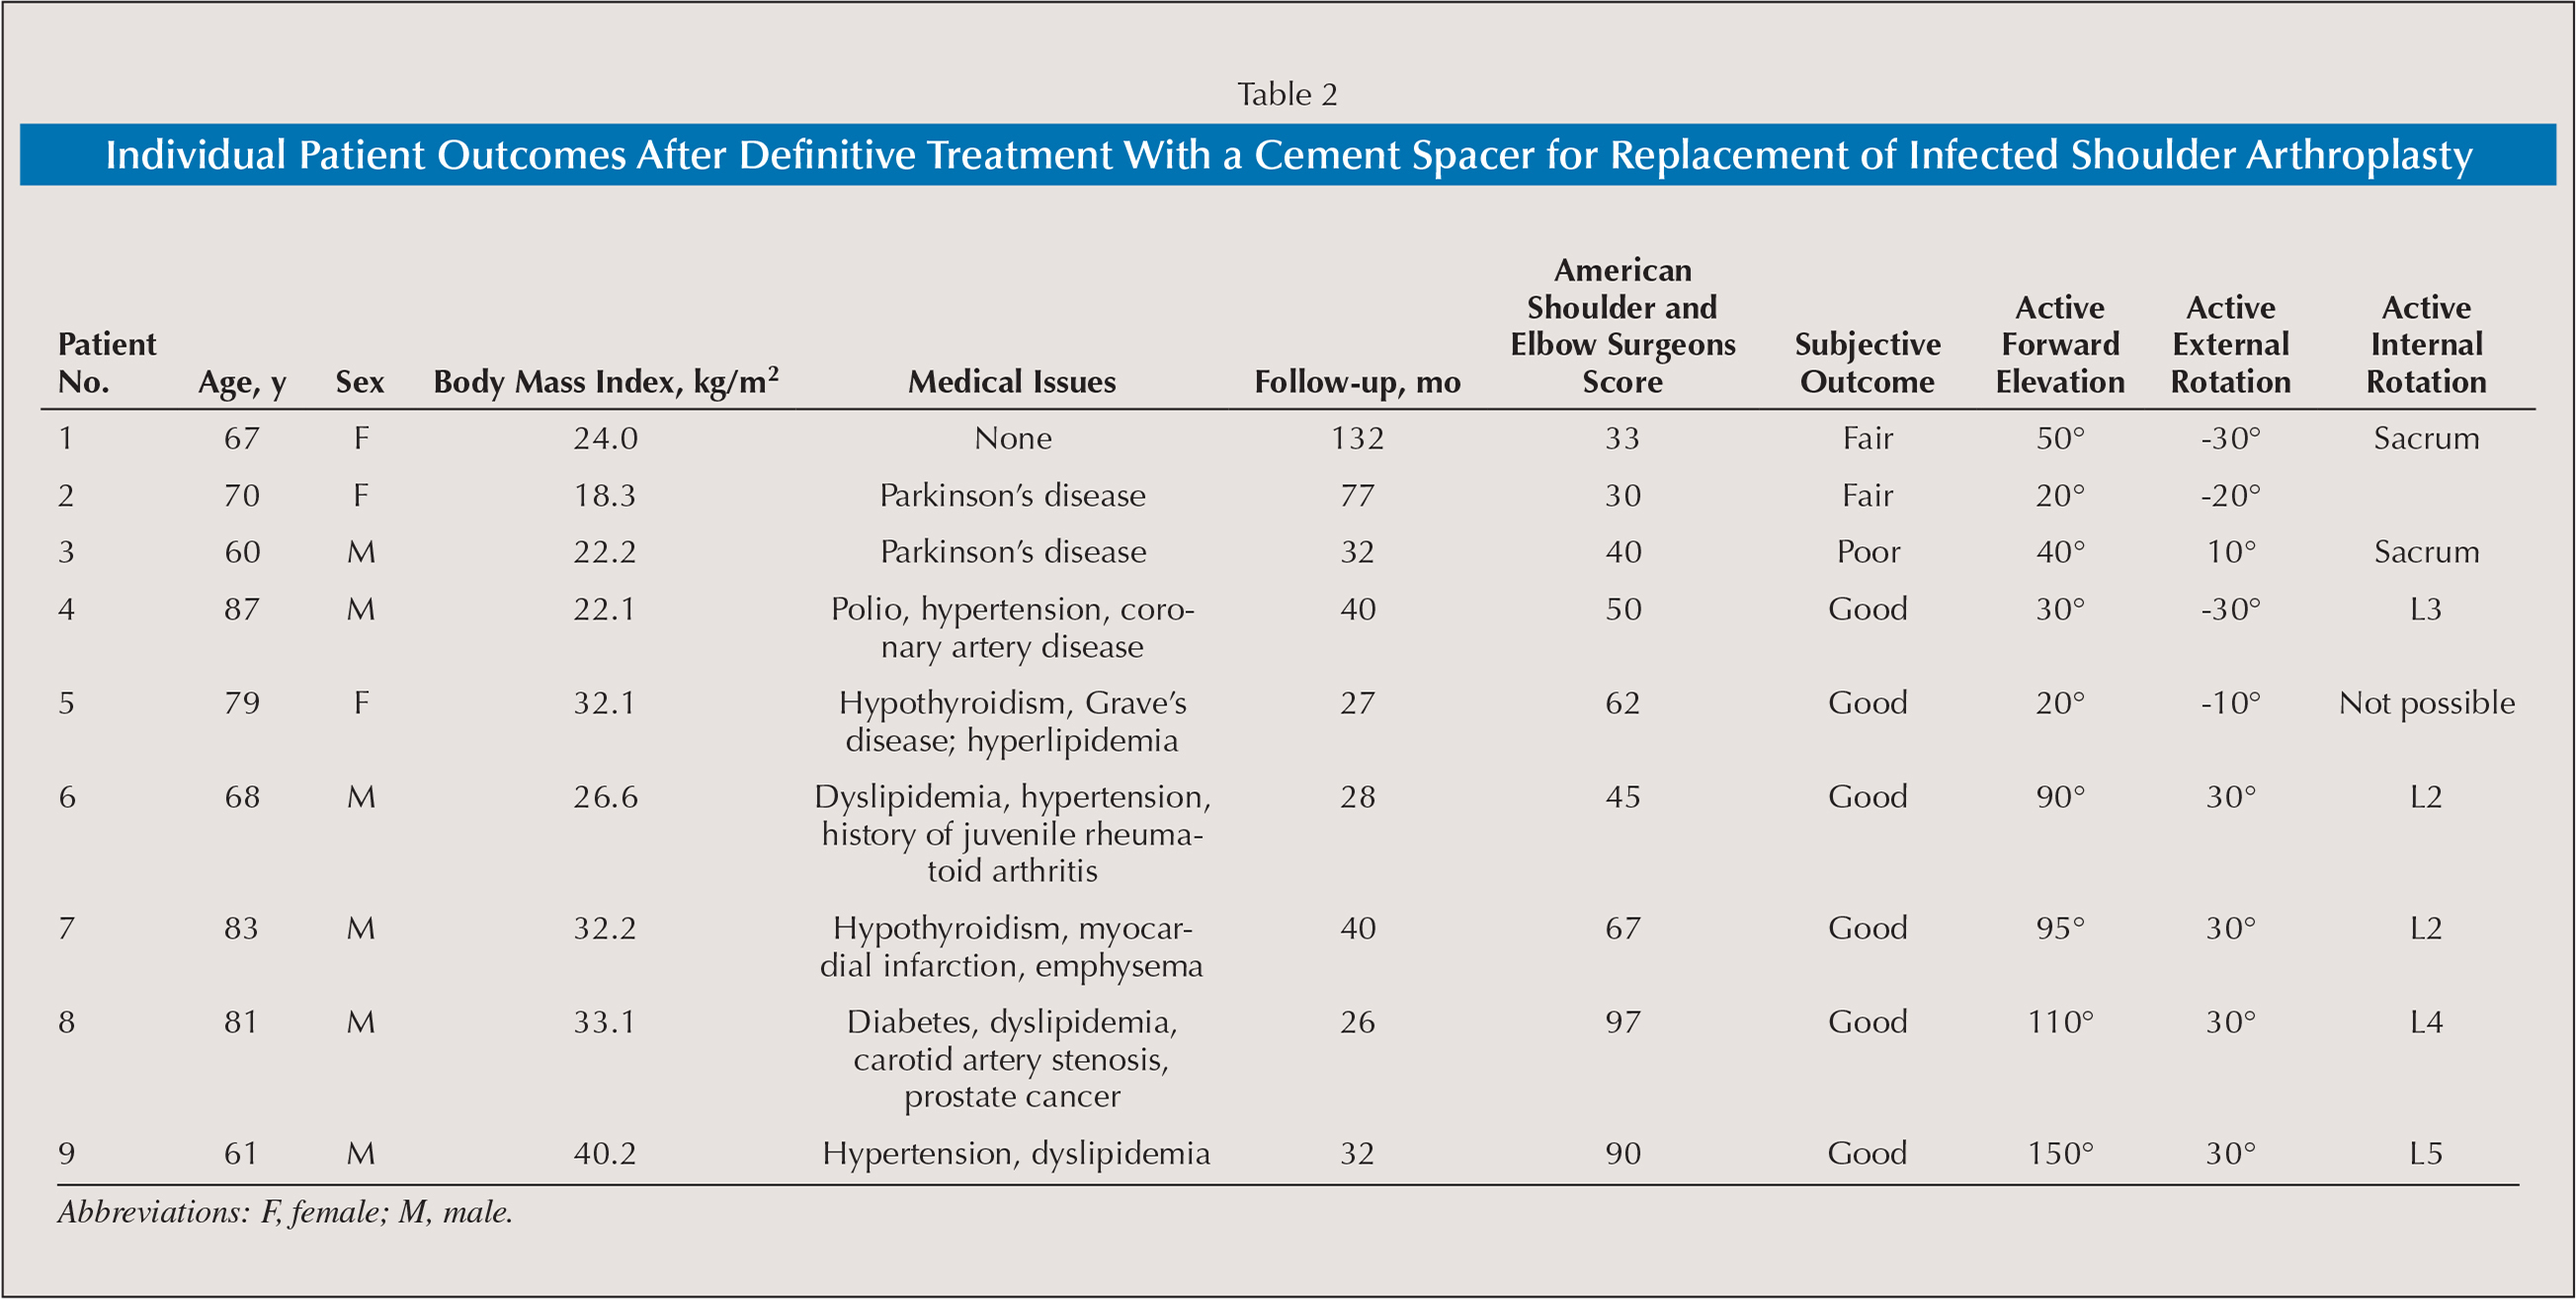 Individual Patient Outcomes After Definitive Treatment With a Cement Spacer for Replacement of Infected Shoulder Arthroplasty